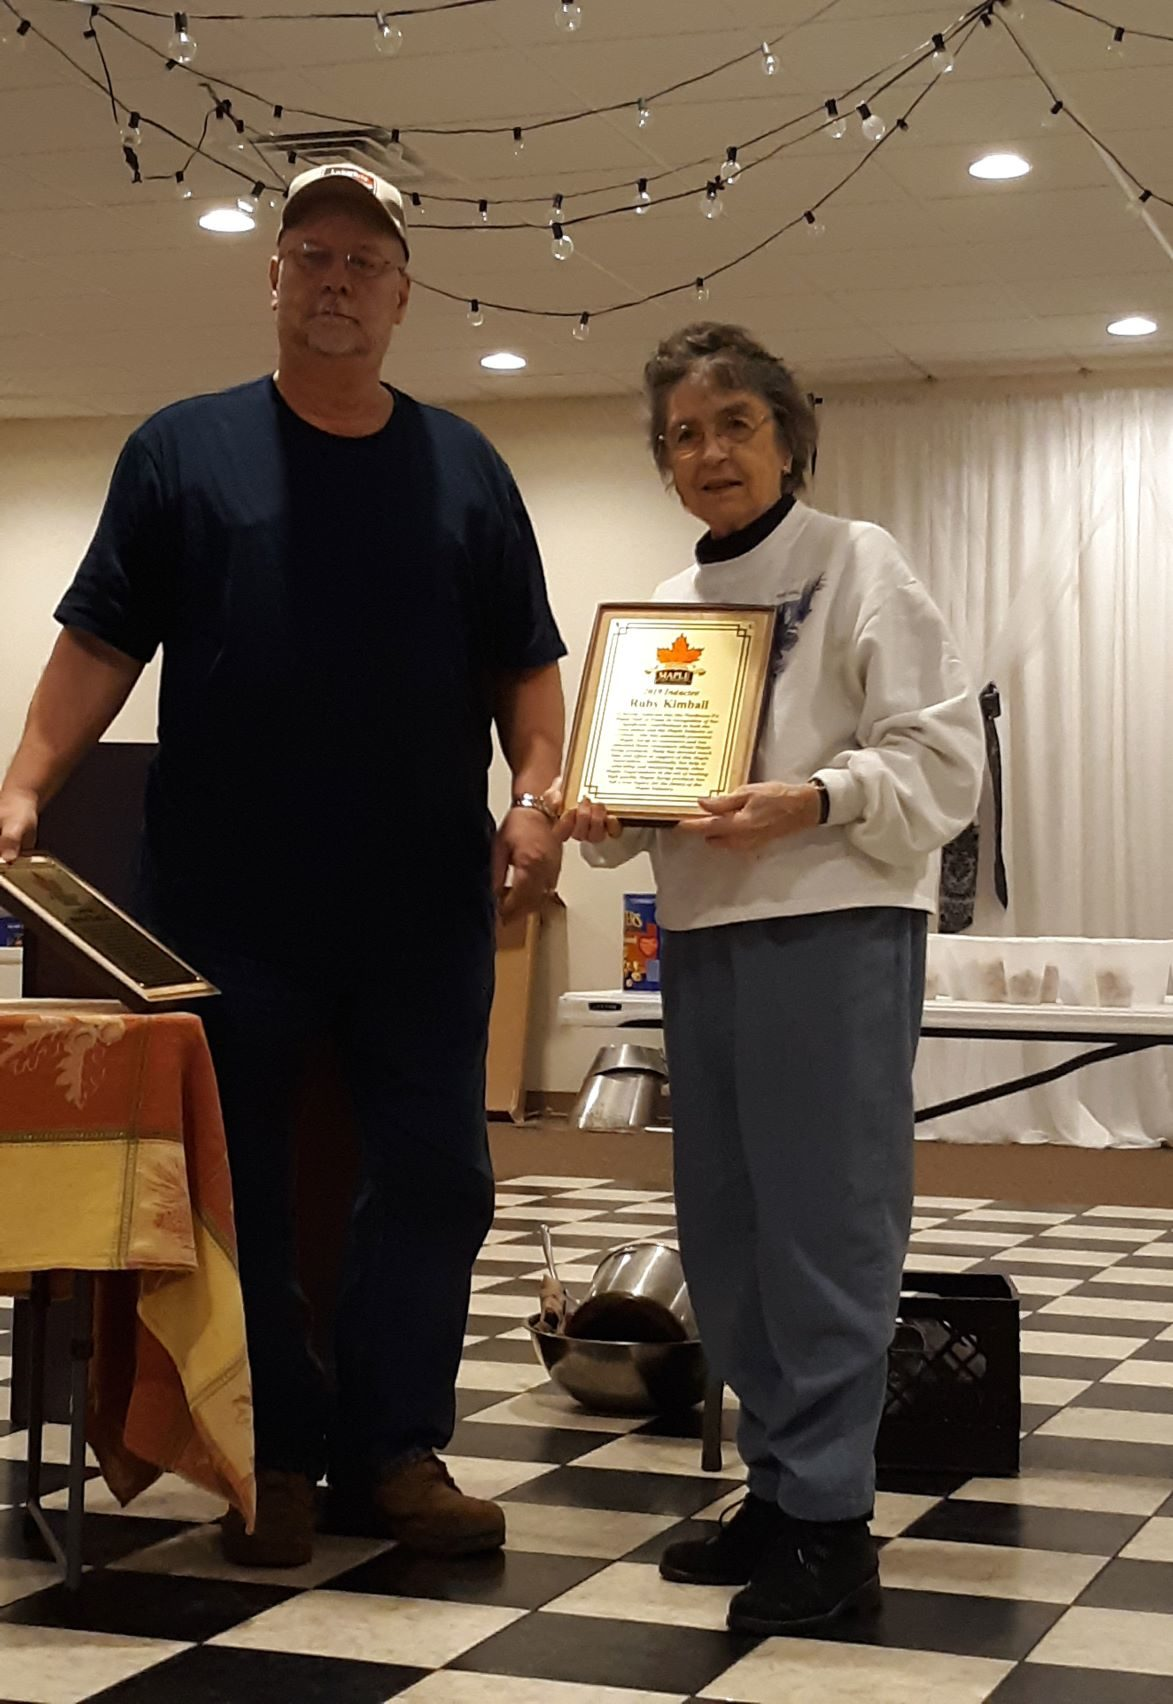 Ruby Kimball accepts a Hall of Fame Induction plaque on behalf of her husband Burton Kimball